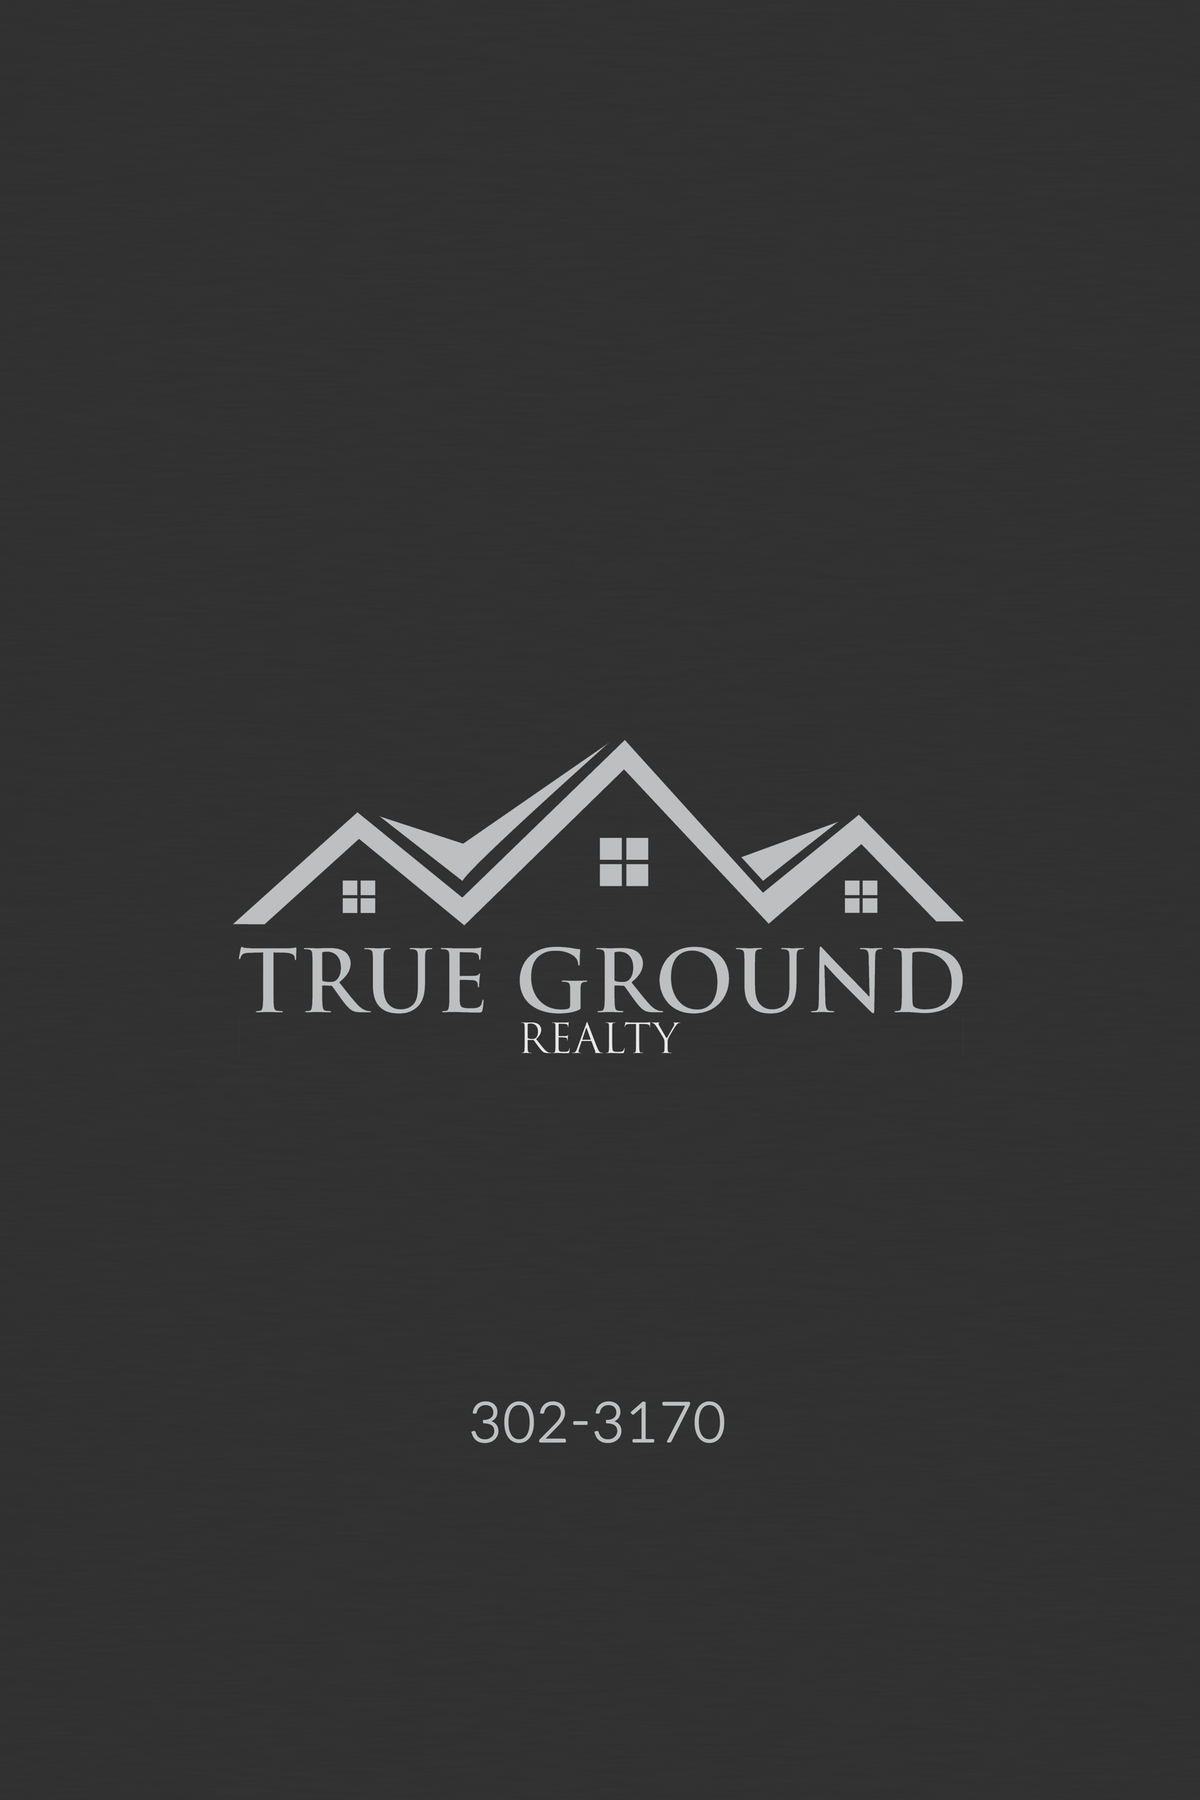 True Ground Realty